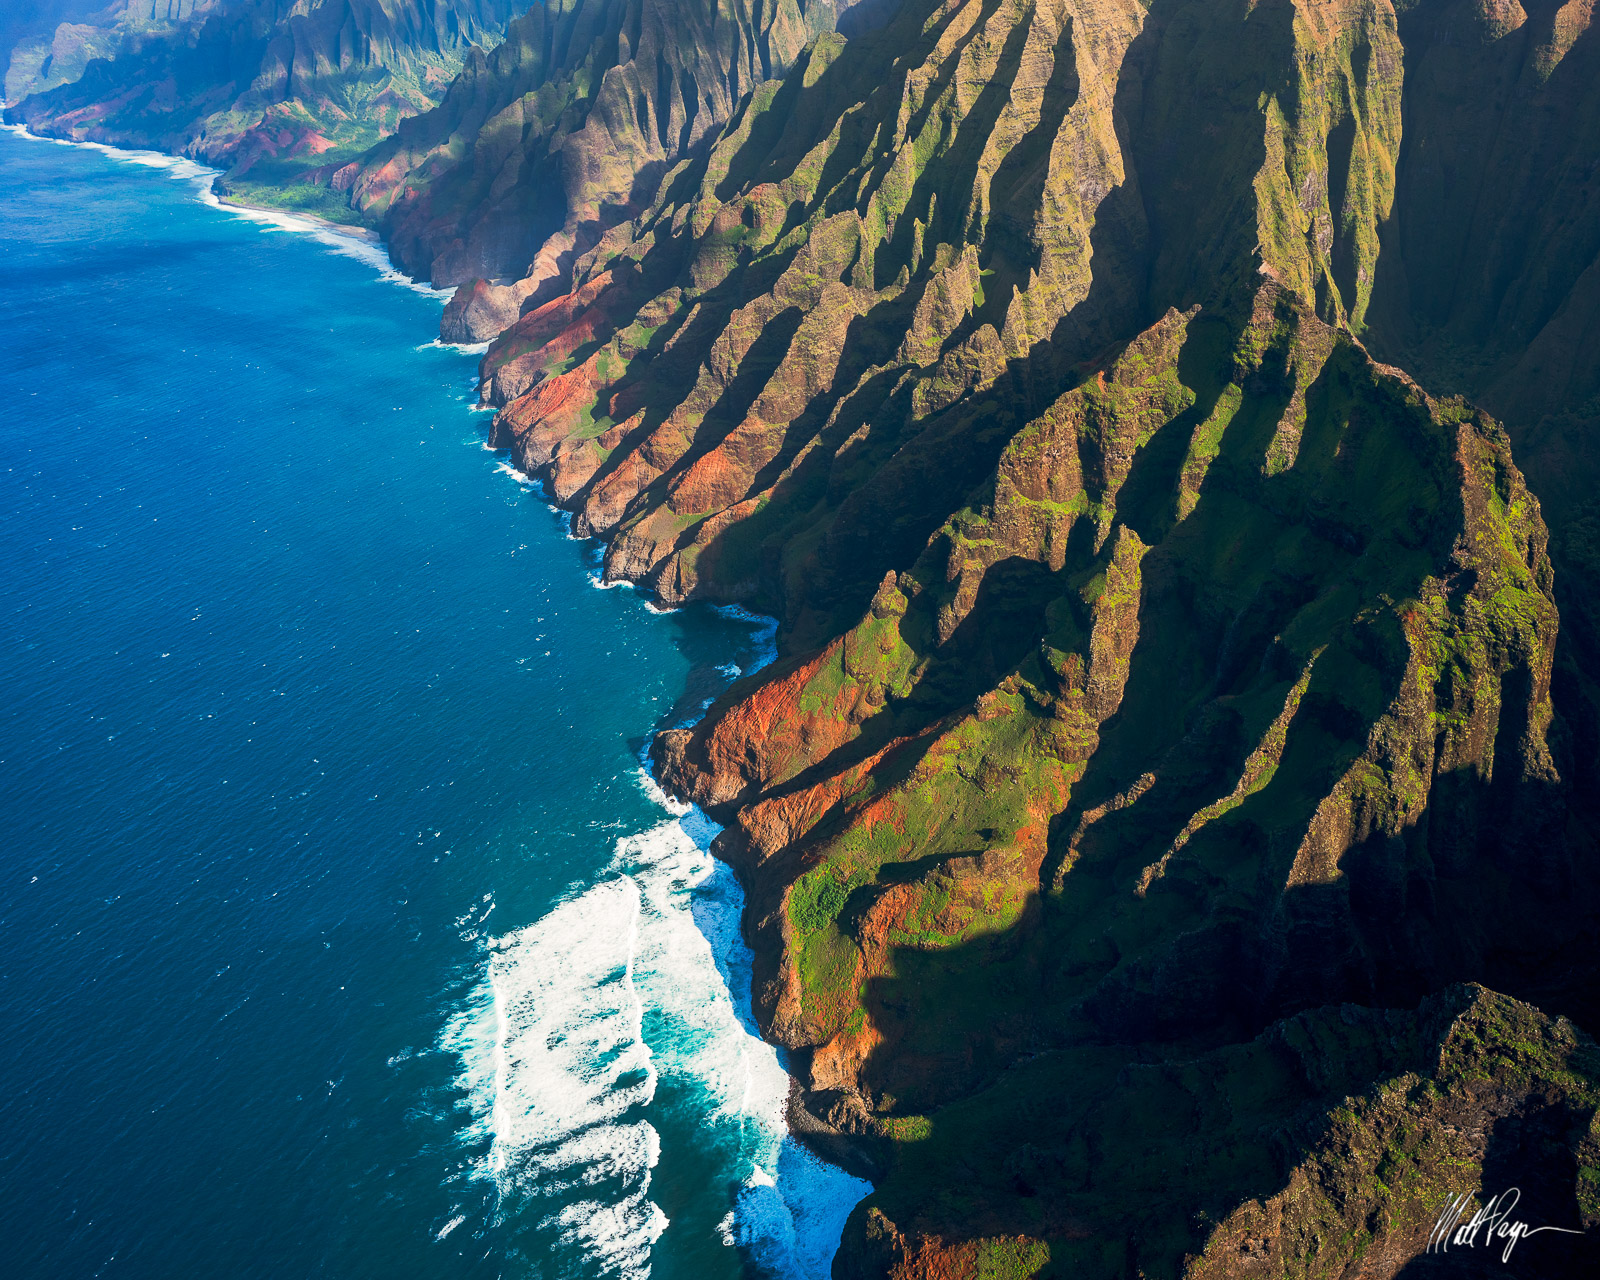 Late afternoon sun casts amazing light across the rugged Na Pali Coastline of Kauai as seen from a helicopter. The blue ocean...